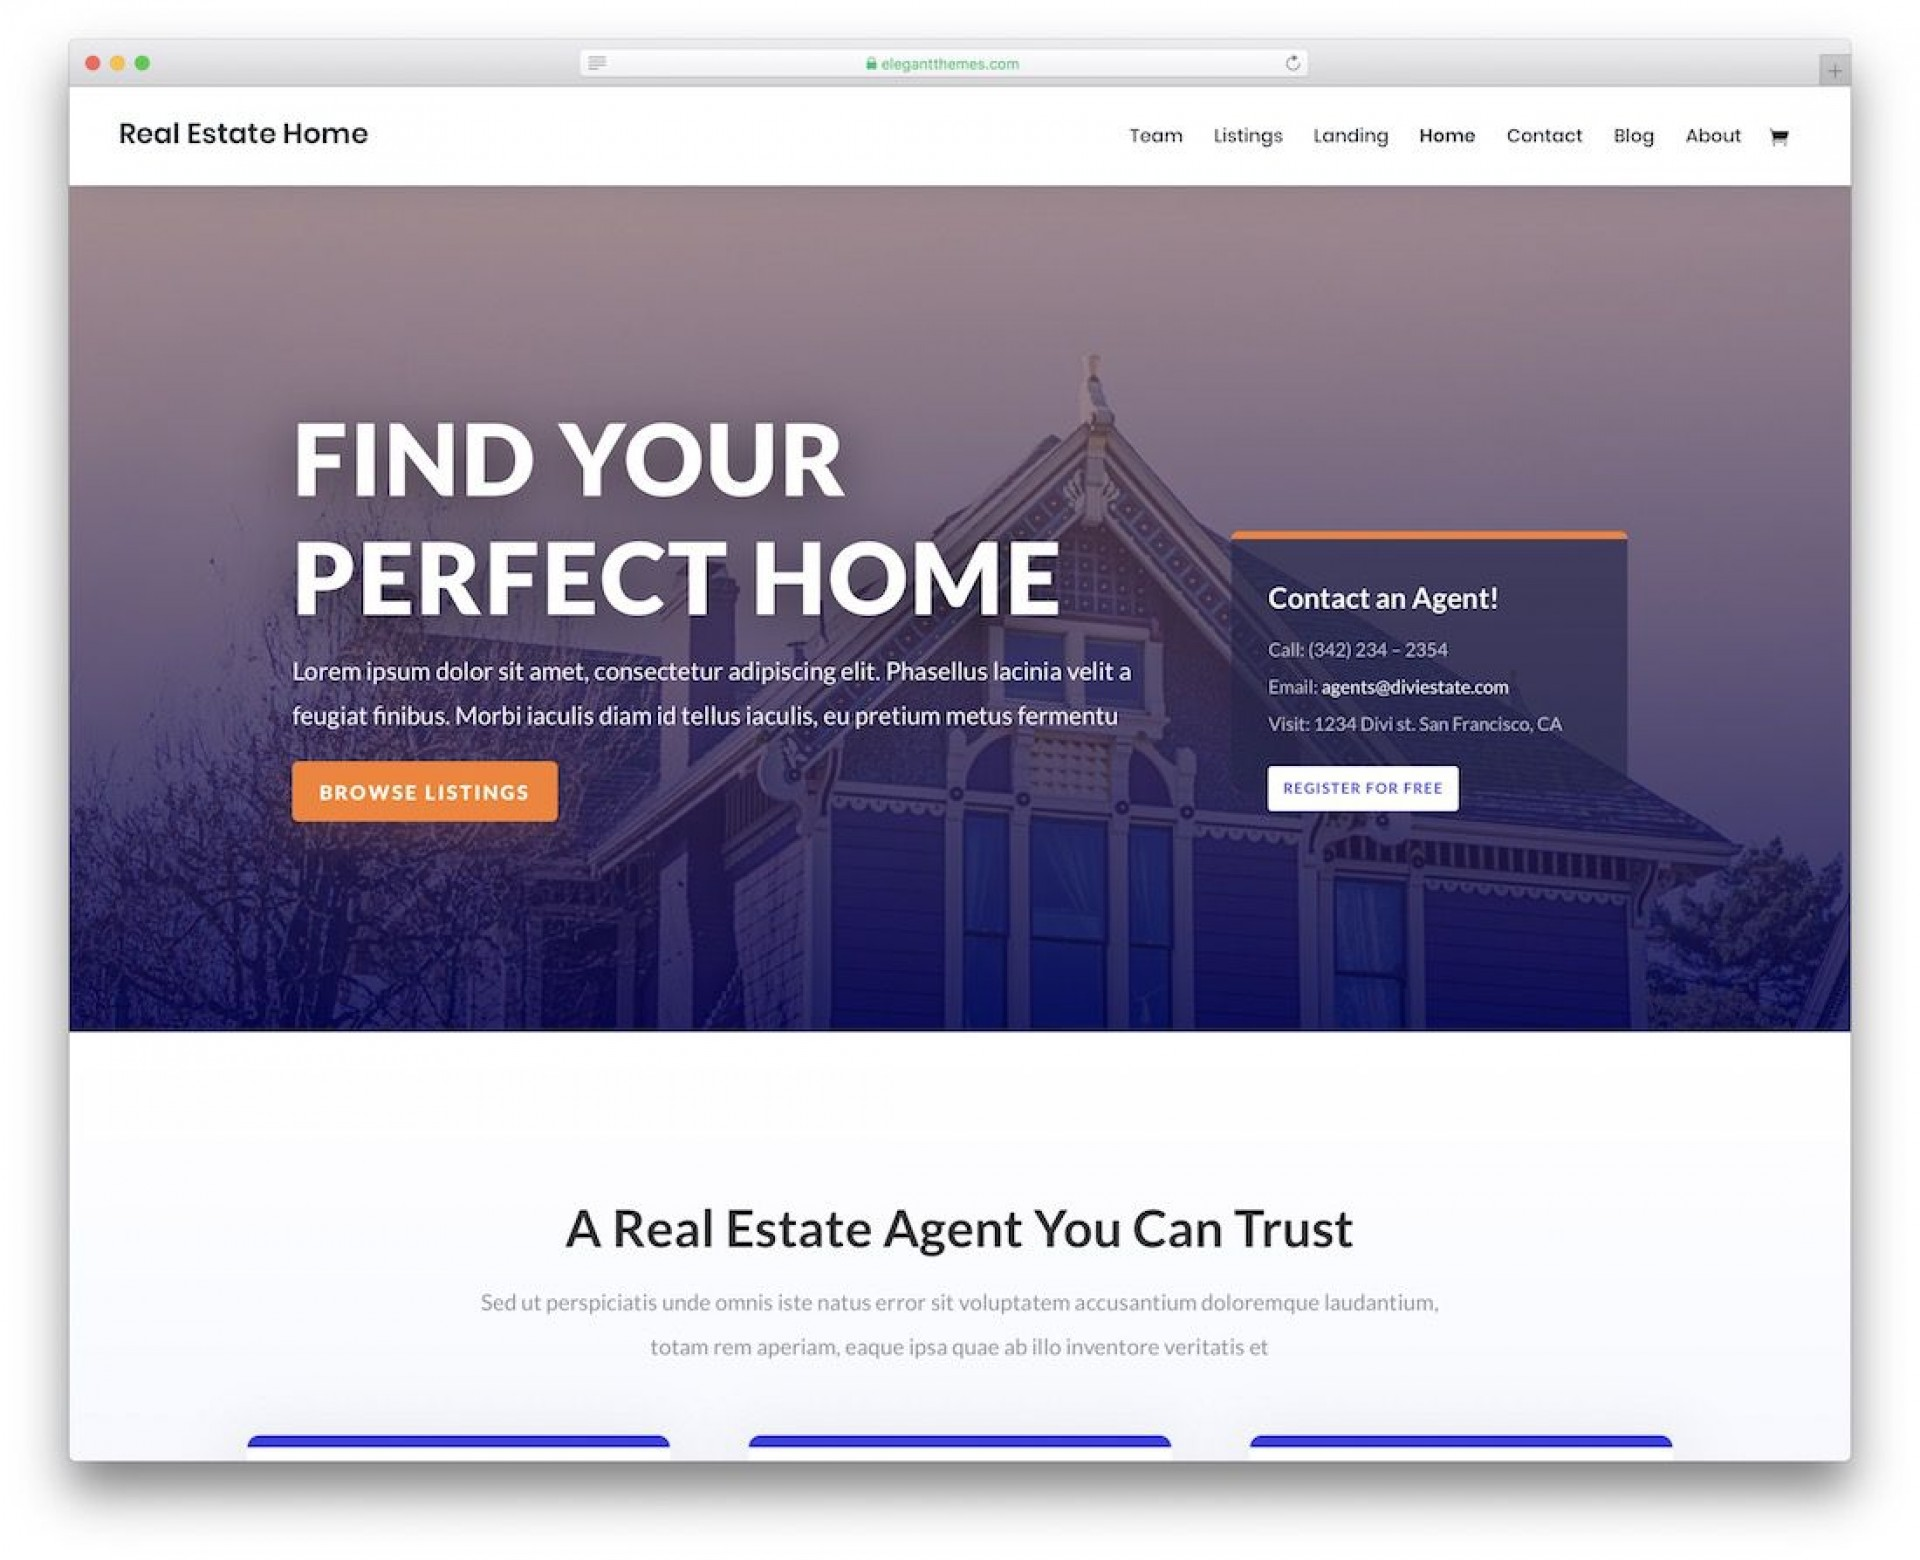 002 Best Real Estate Website Template Idea  Templates Free Download Bootstrap 4 Listing Wordpres1920